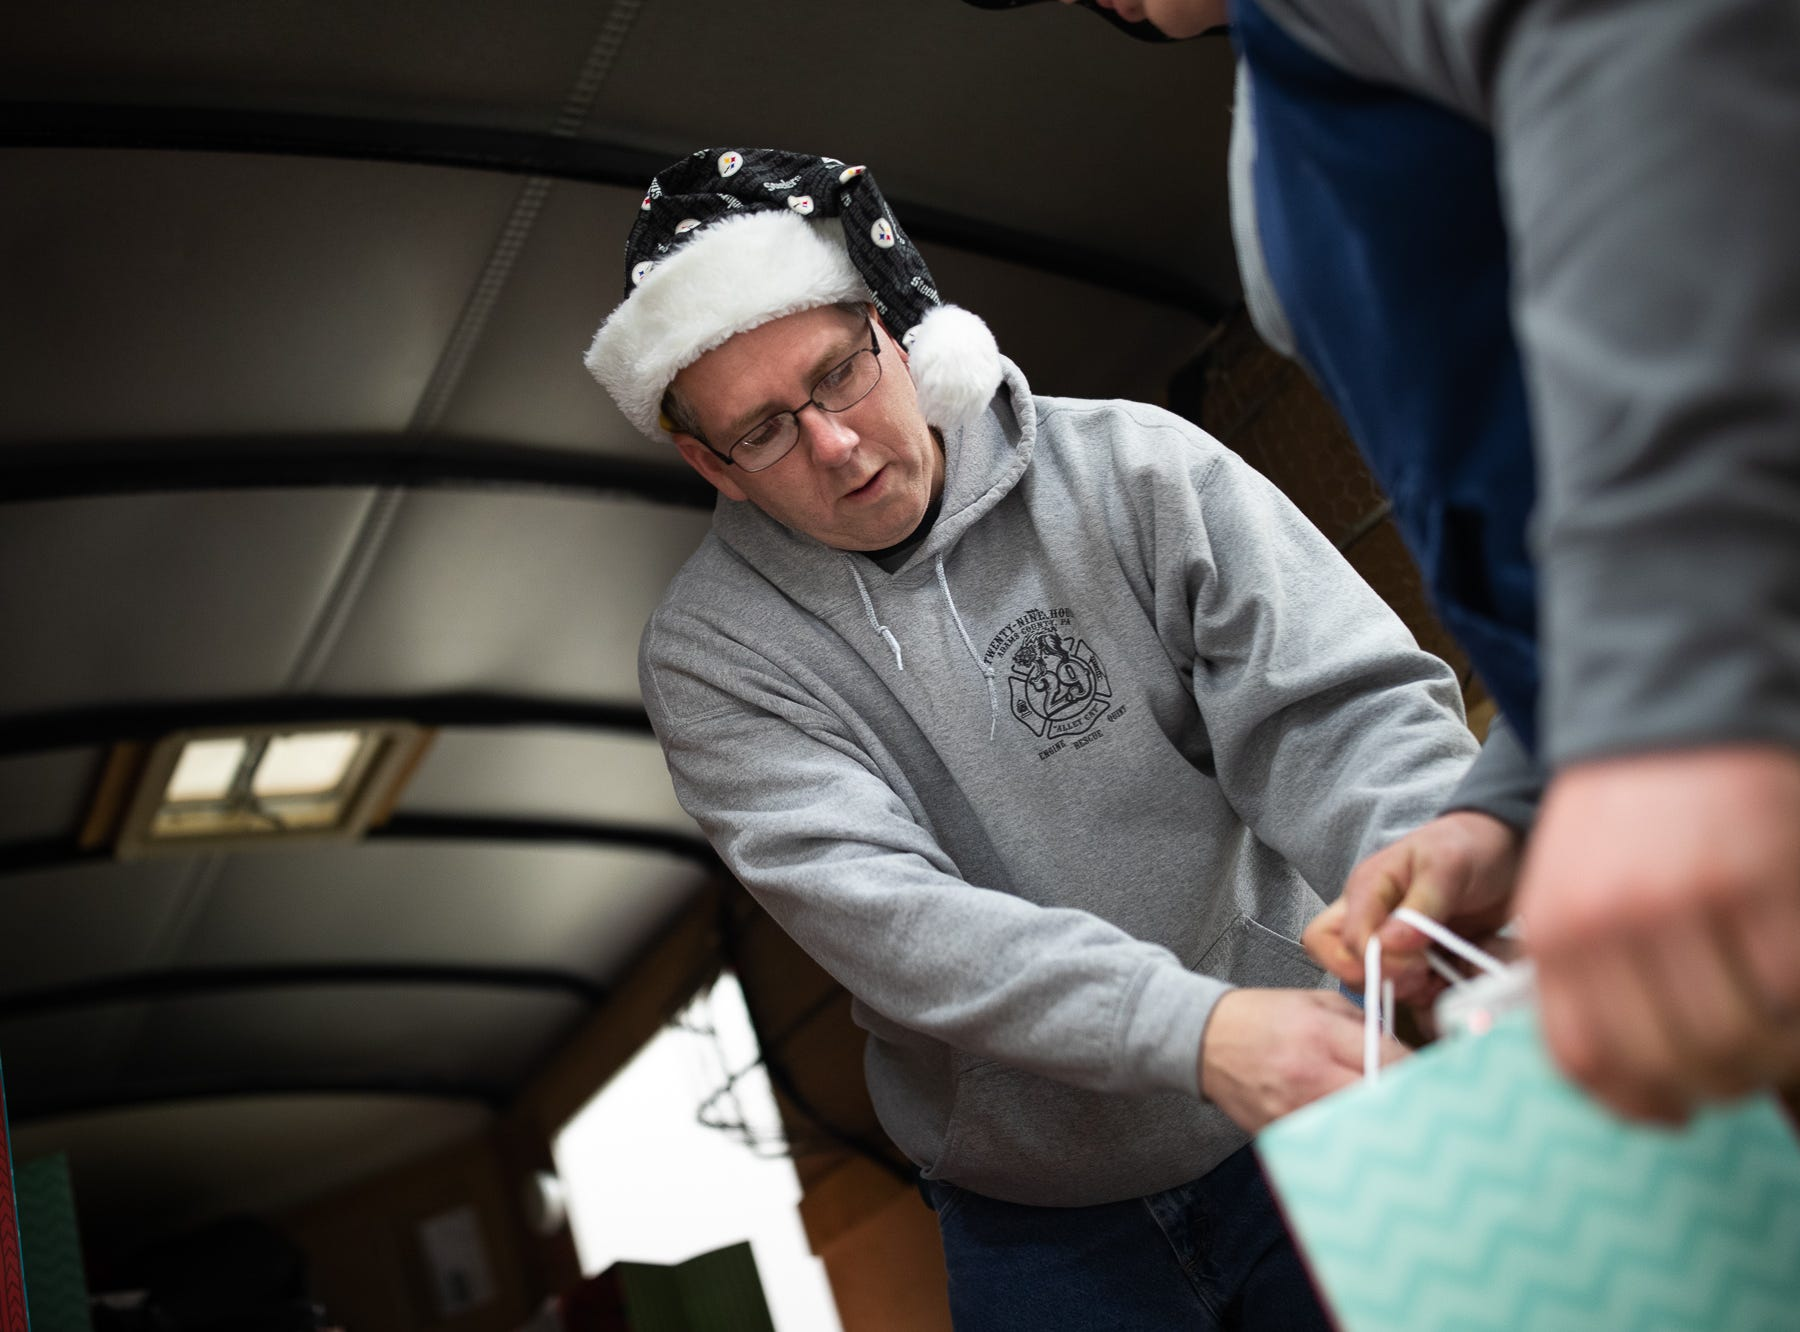 Firefighter Chad Grimes loads presents at the Southeastern Adams County Volunteer Emergency Services fire station during the S.A.V.E.S Project Santa, Saturday, Dec. 22, 2018, in McSherrystown Borough. The S.A.V.E.S Project Santa donated food, toys, and clothing to 12 local families in need.